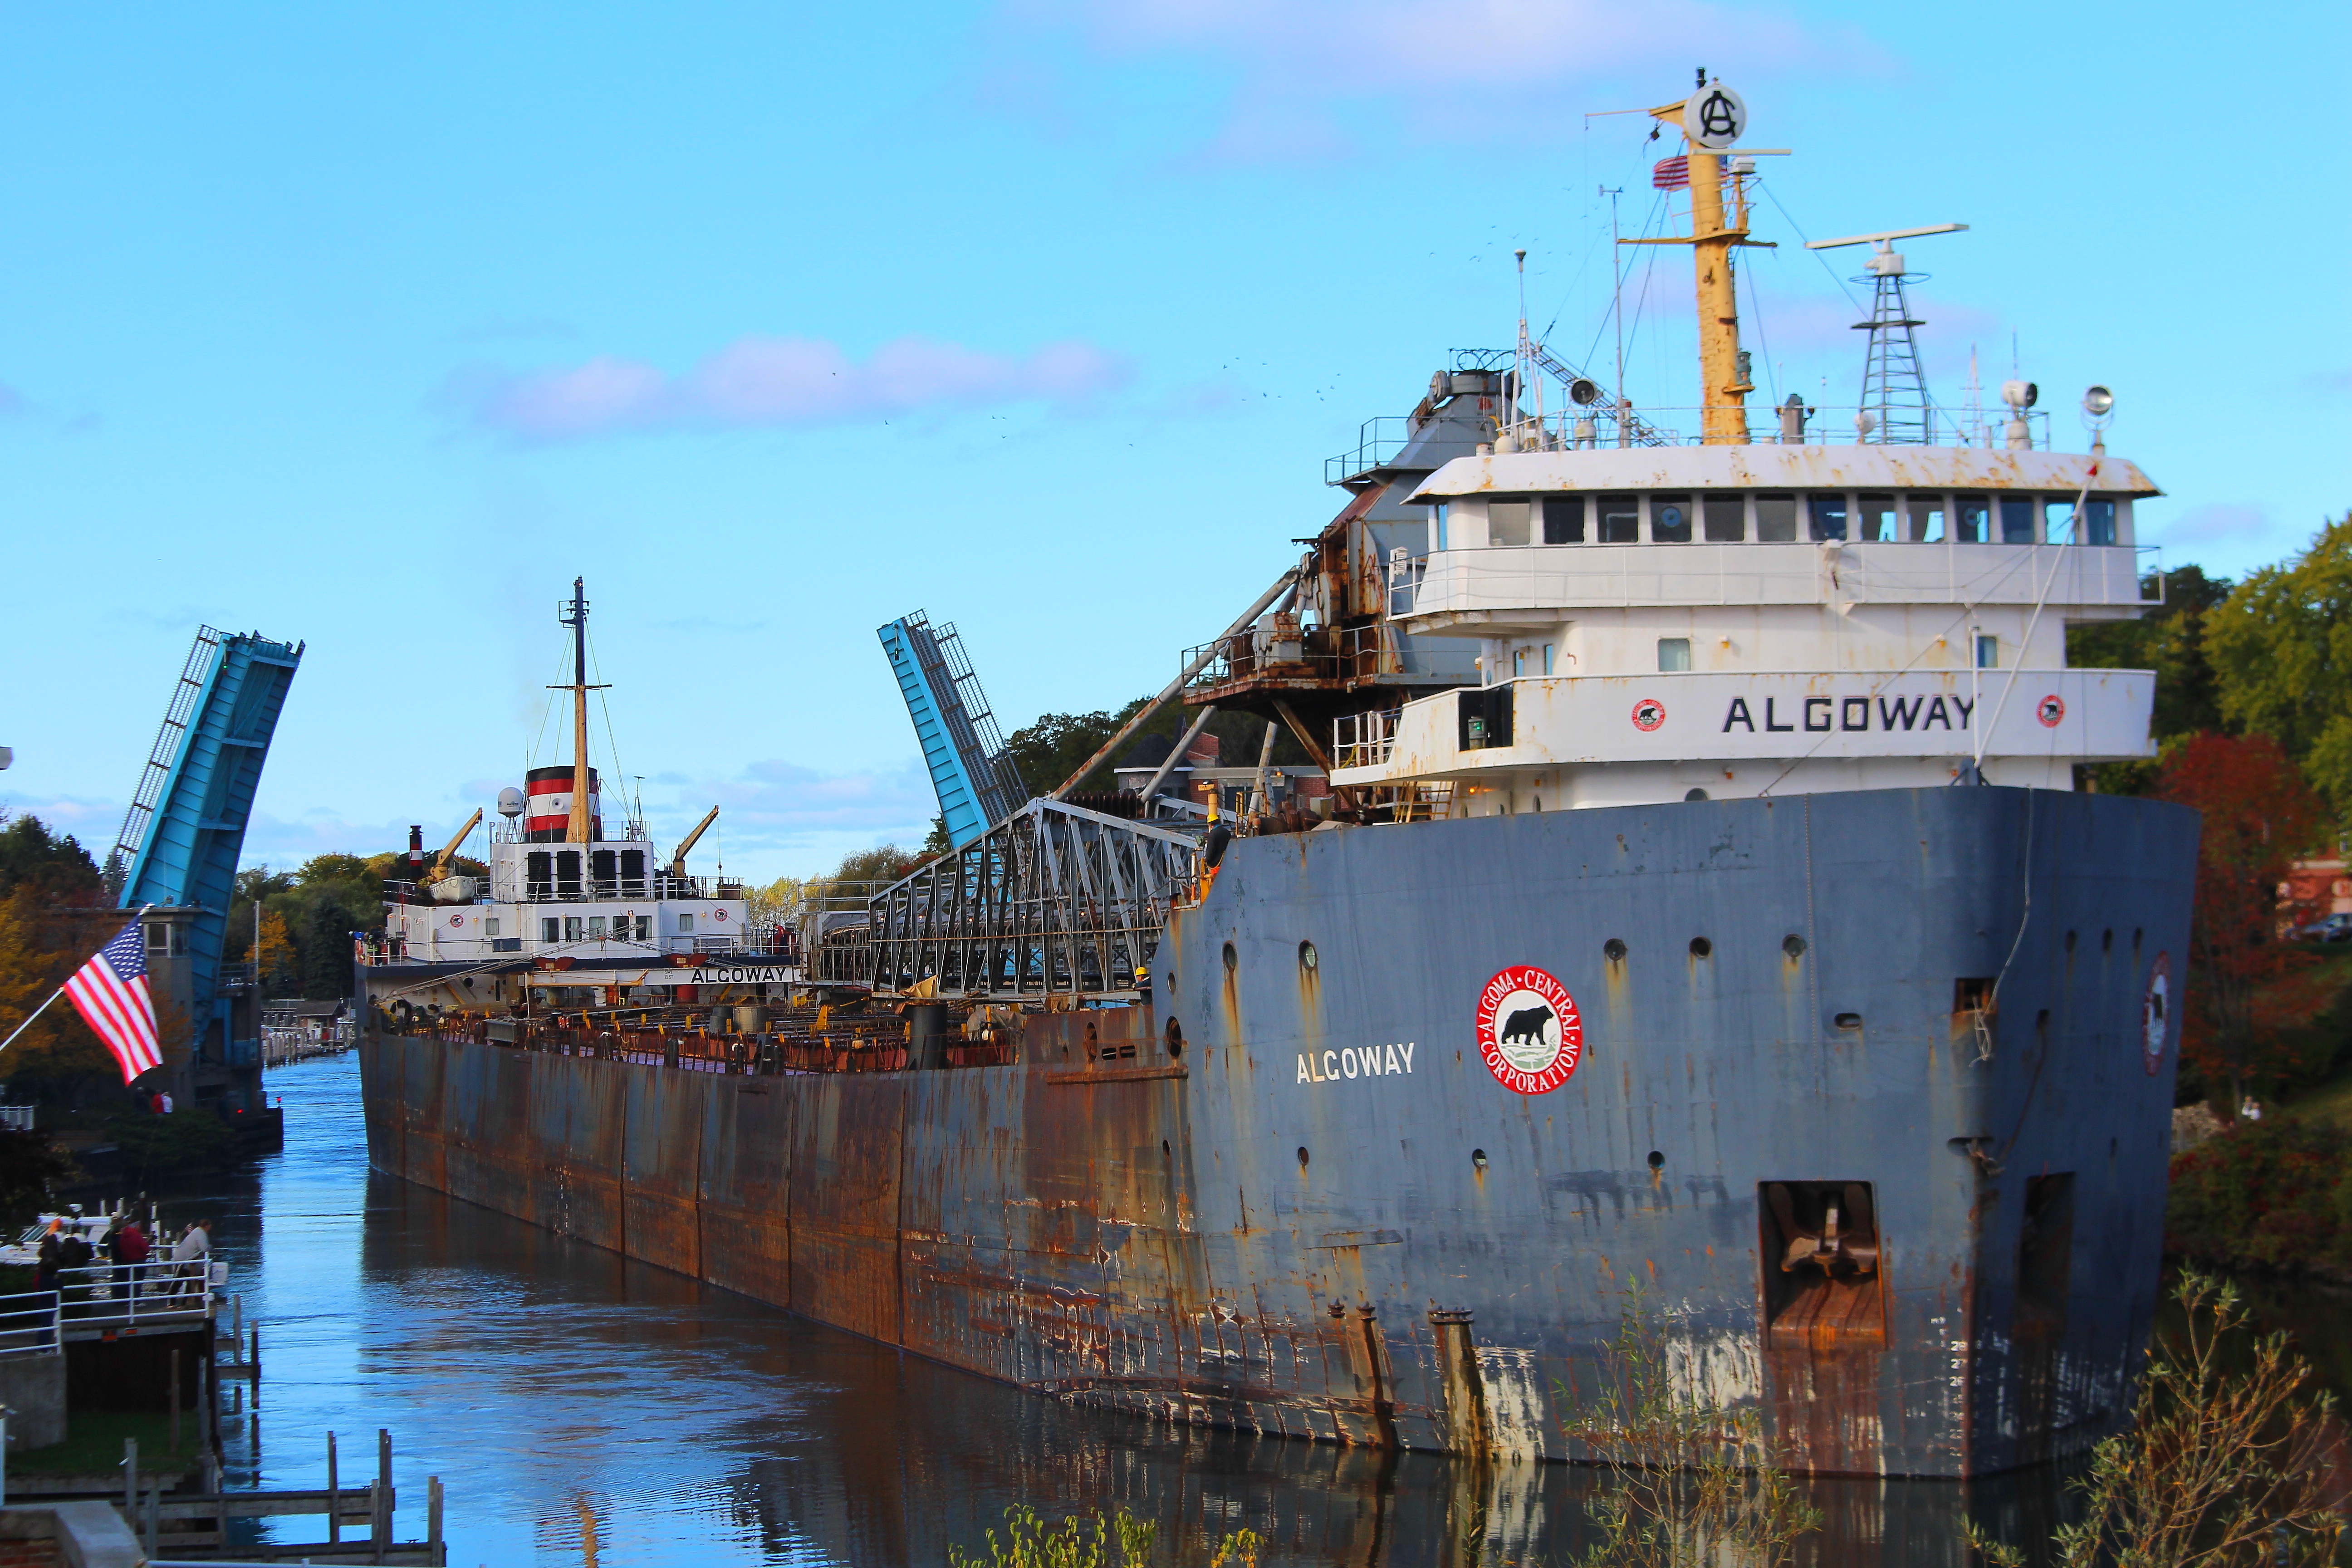 Freighter Algoway seeing going through Maple Street Bridge